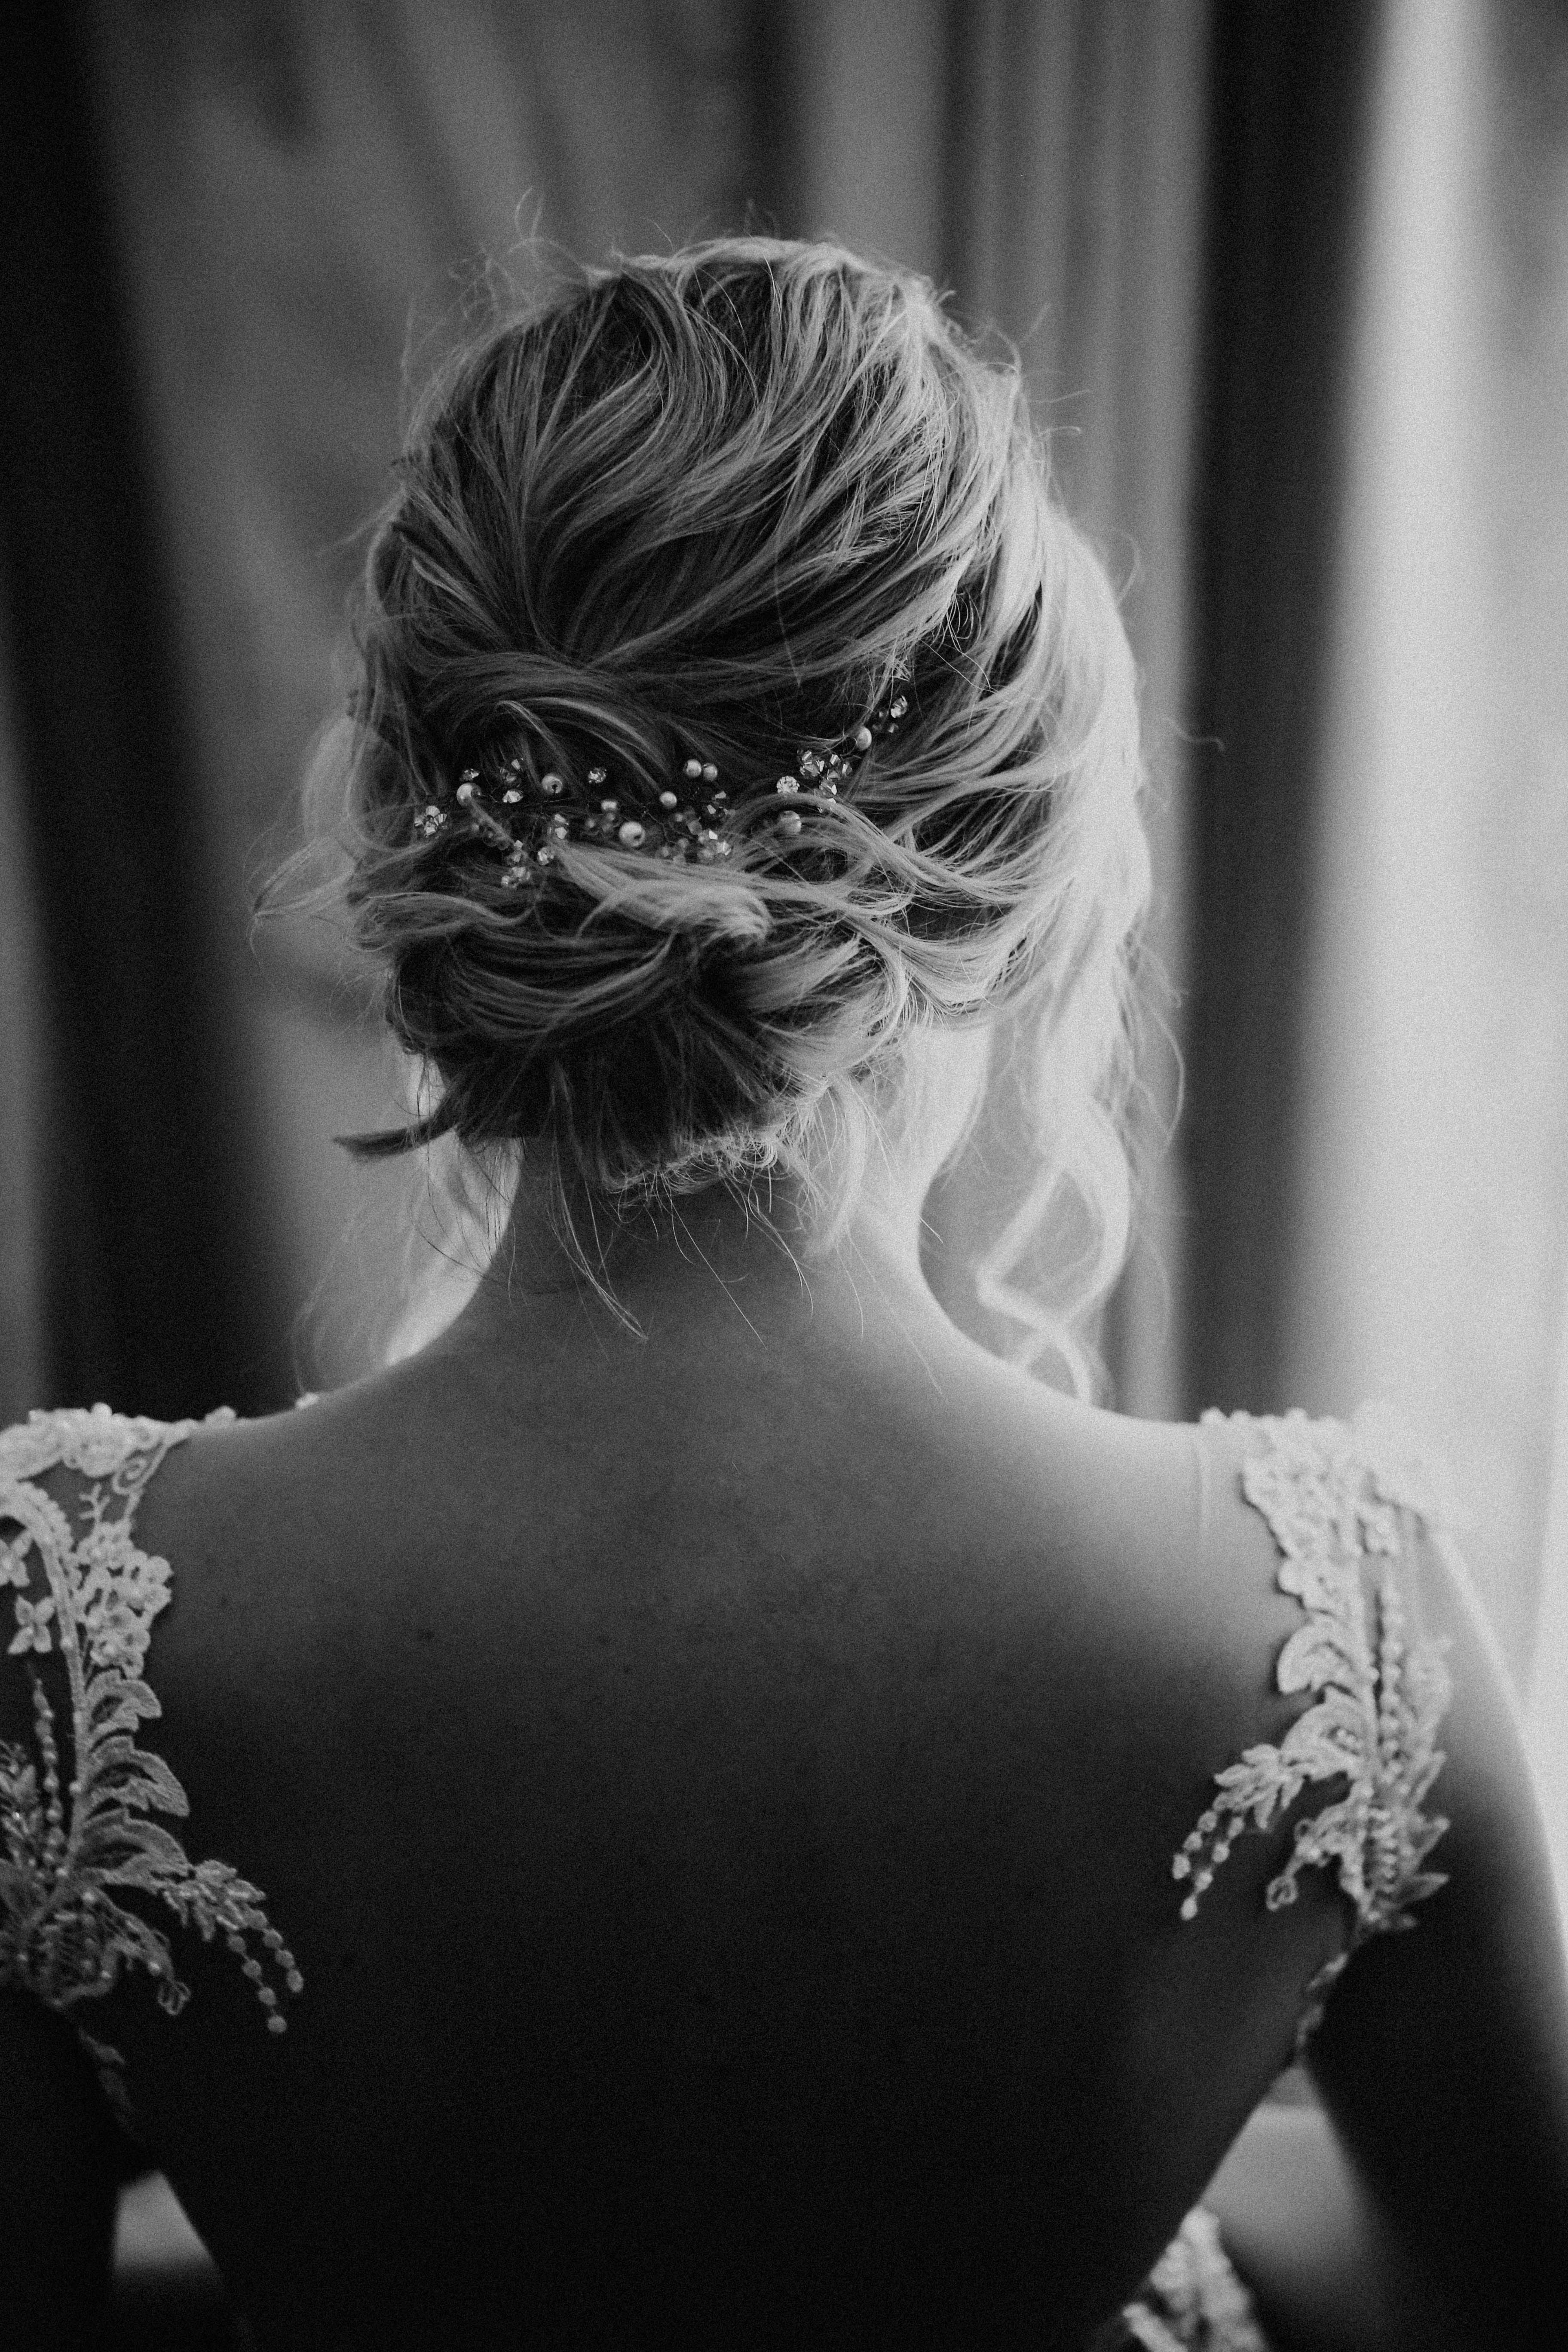 grayscale photography of woman in wedding dress